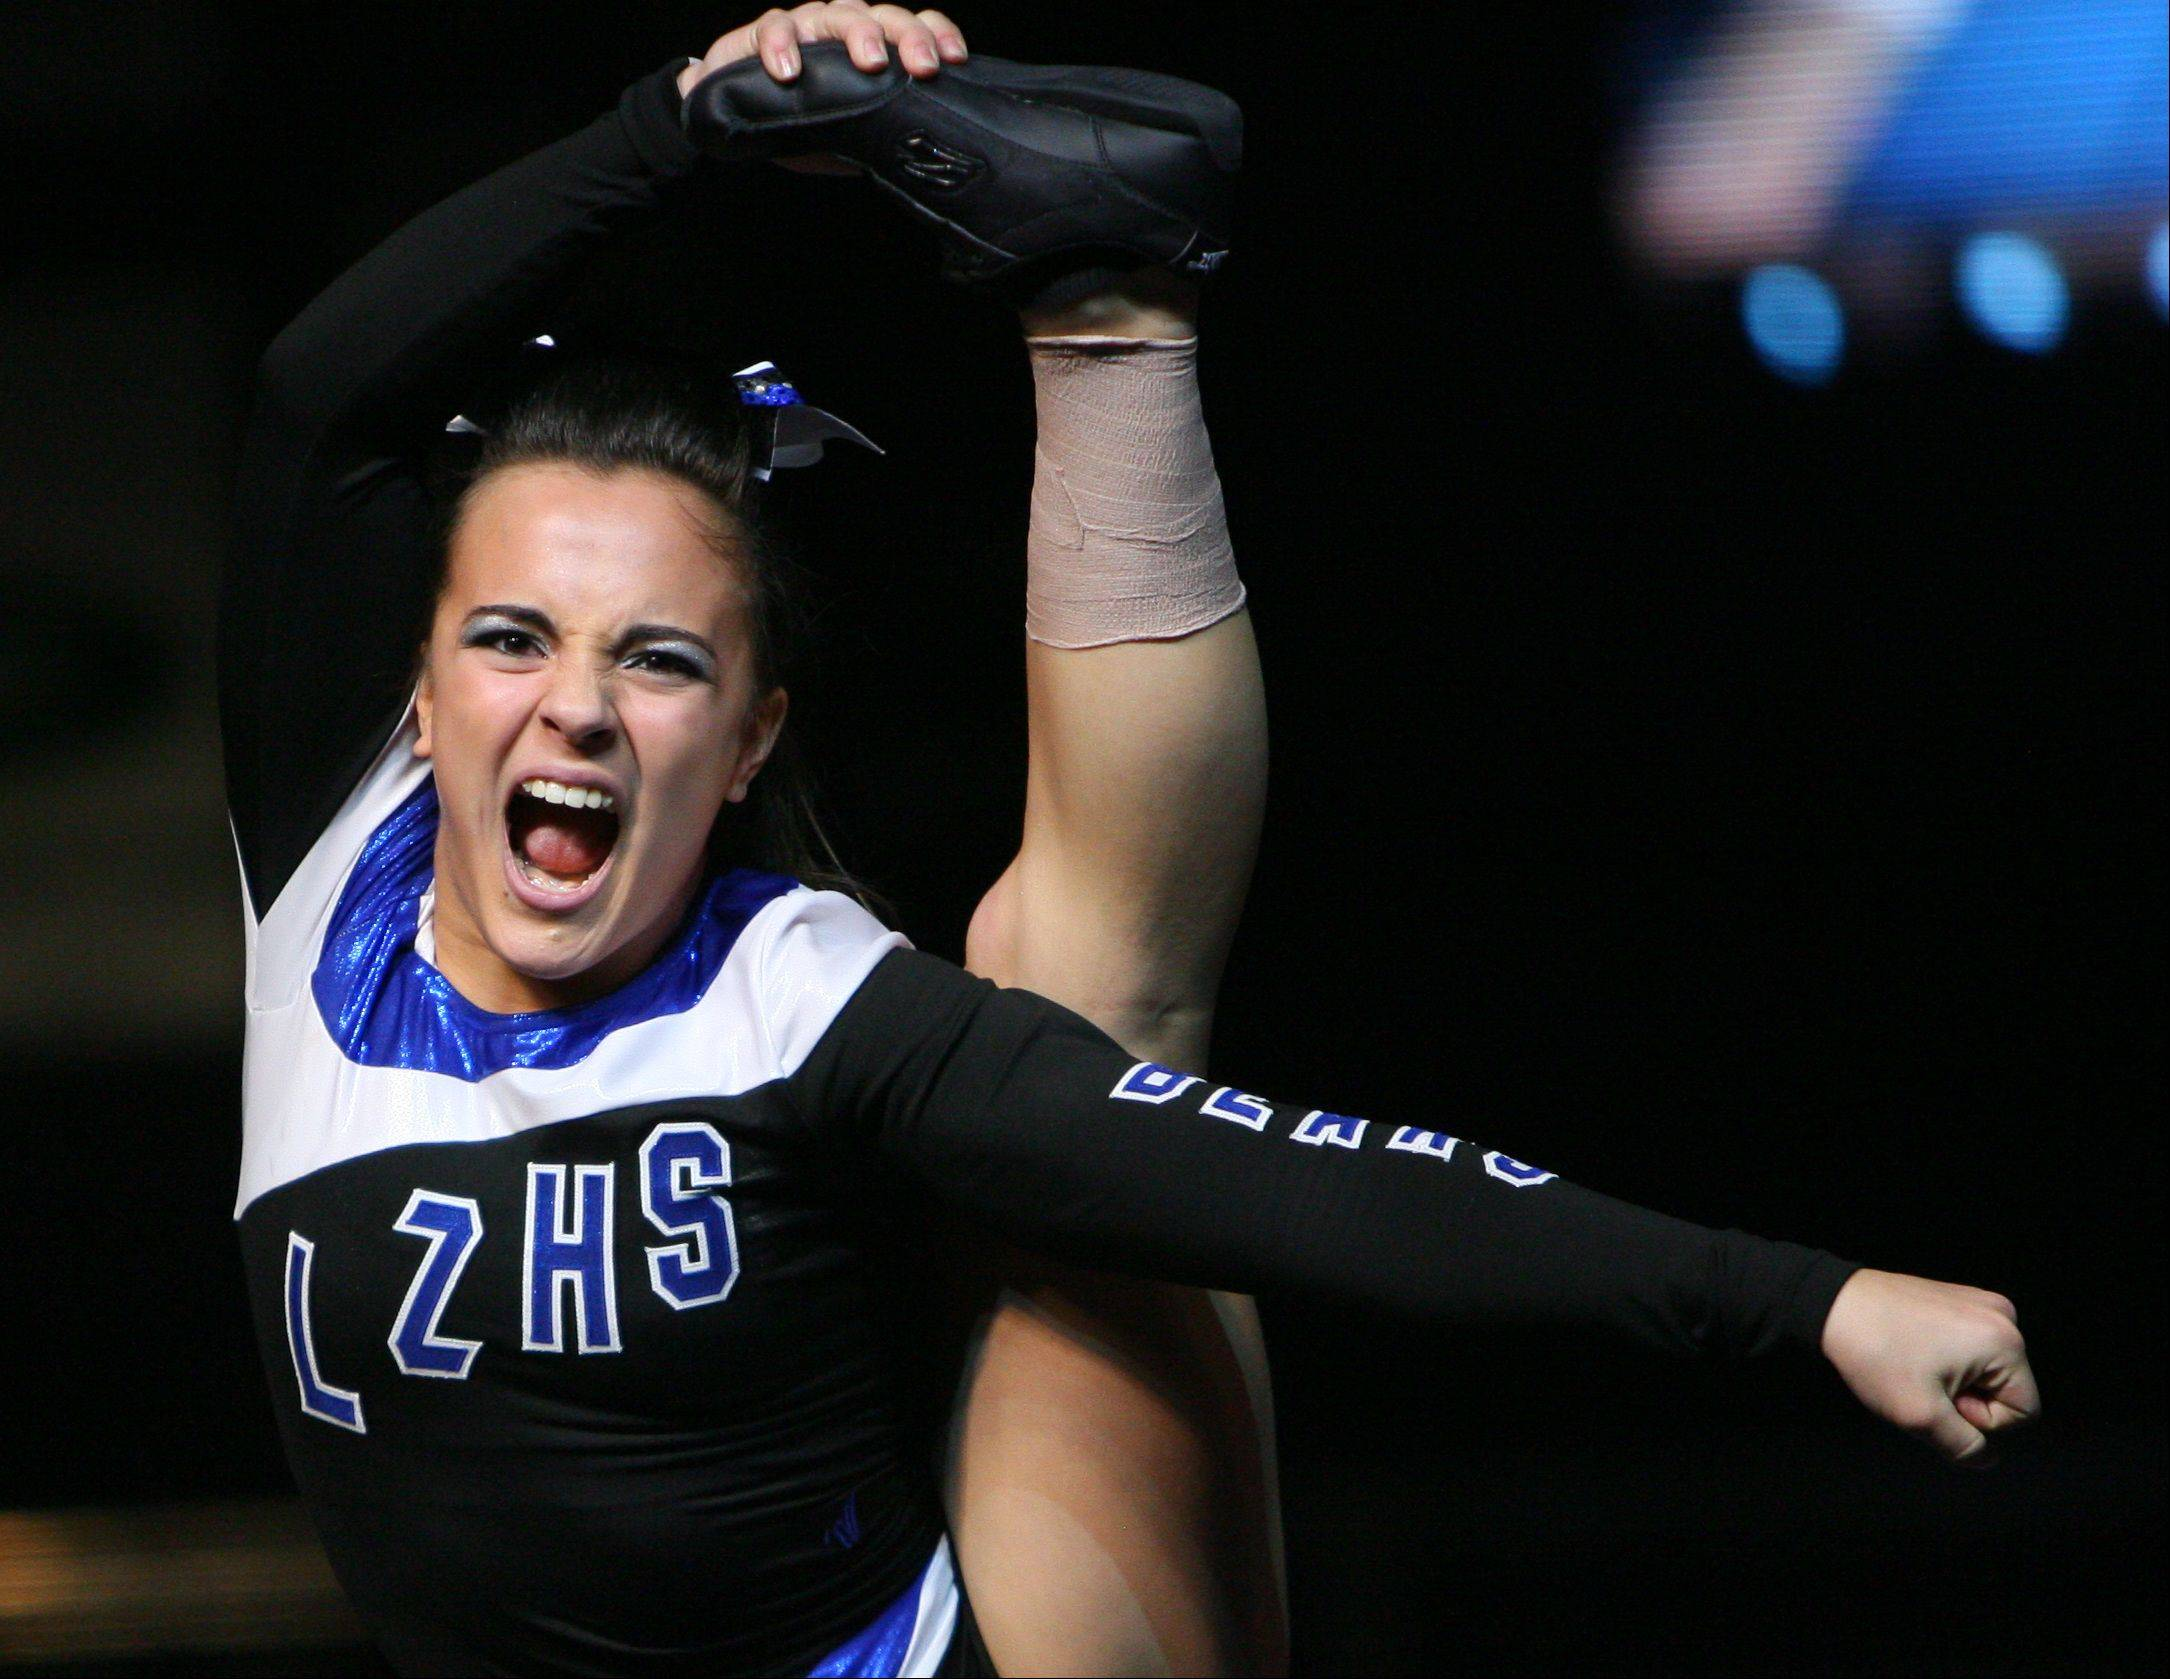 Lake Zurich High School participates in the IHSA Competitive Cheerleading finals on Saturday at the U.S. Cellular Coliseum in Bloomington.